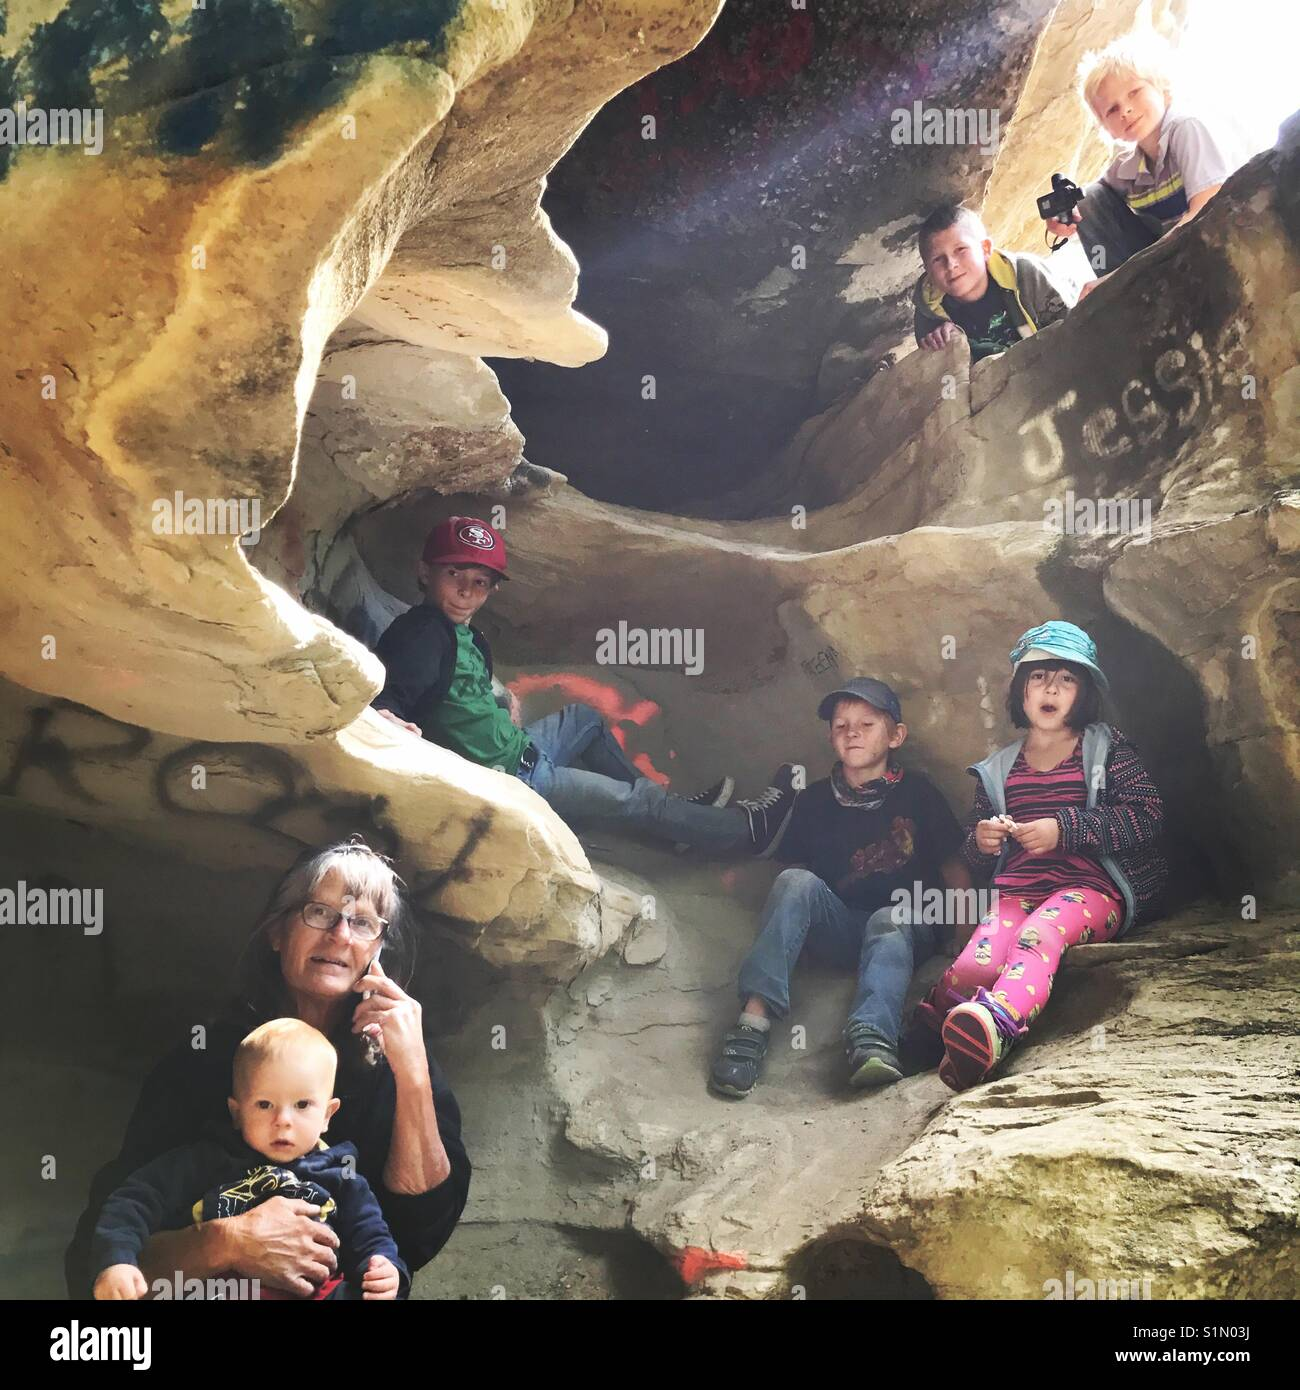 Exploring caves with my family - Stock Image